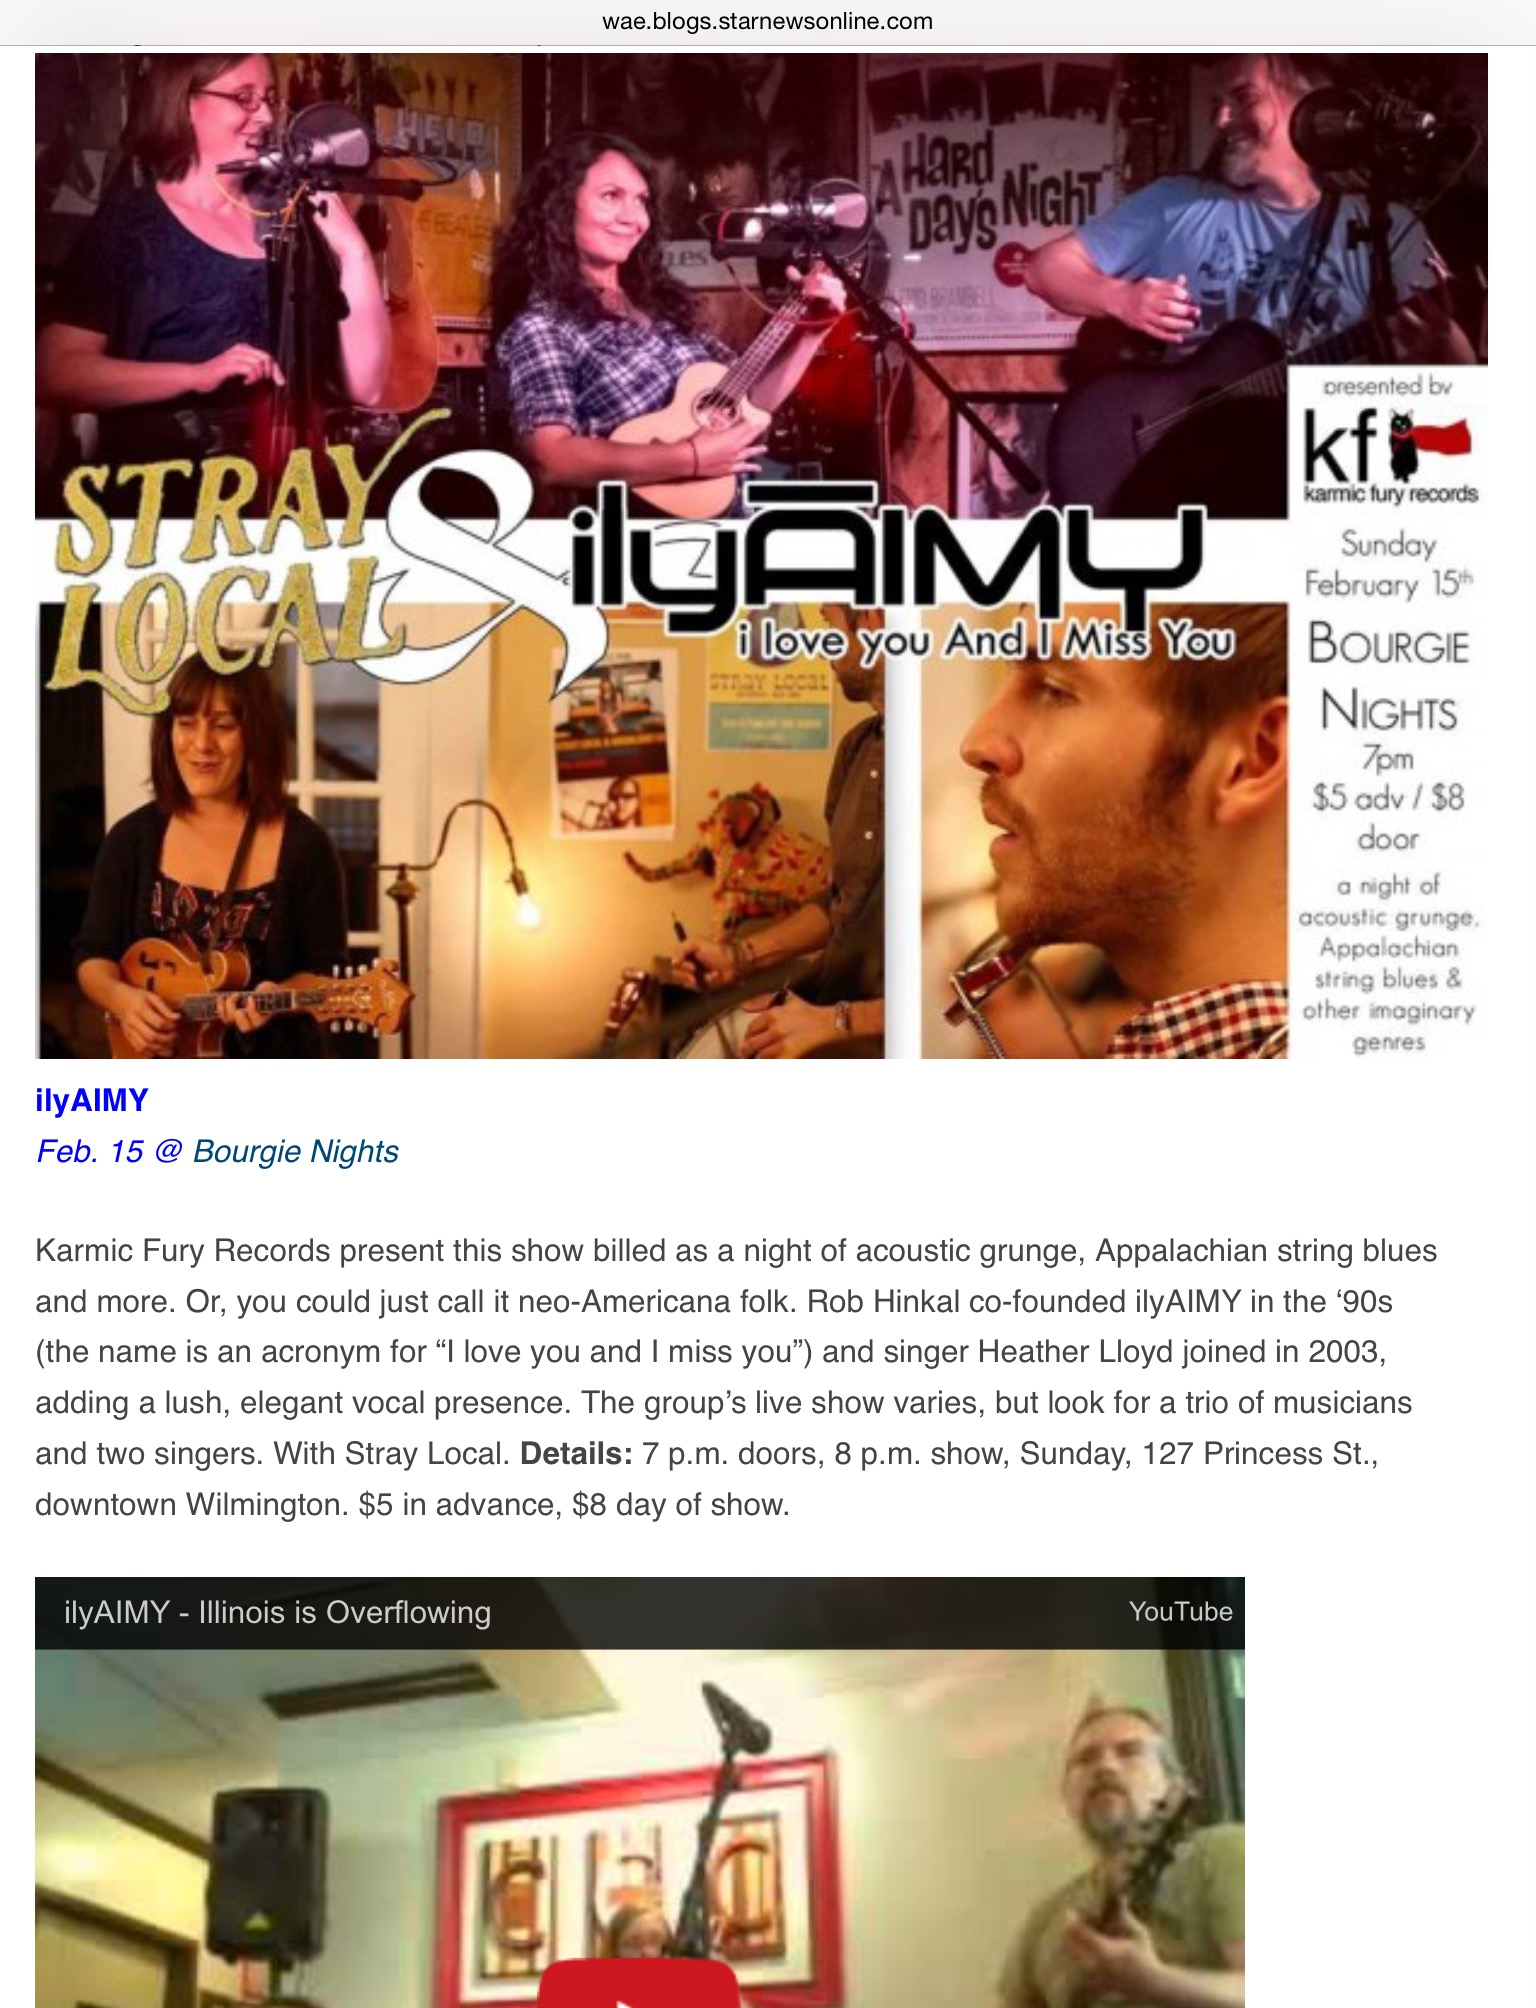 ilyaimy and karmic fury records in star news